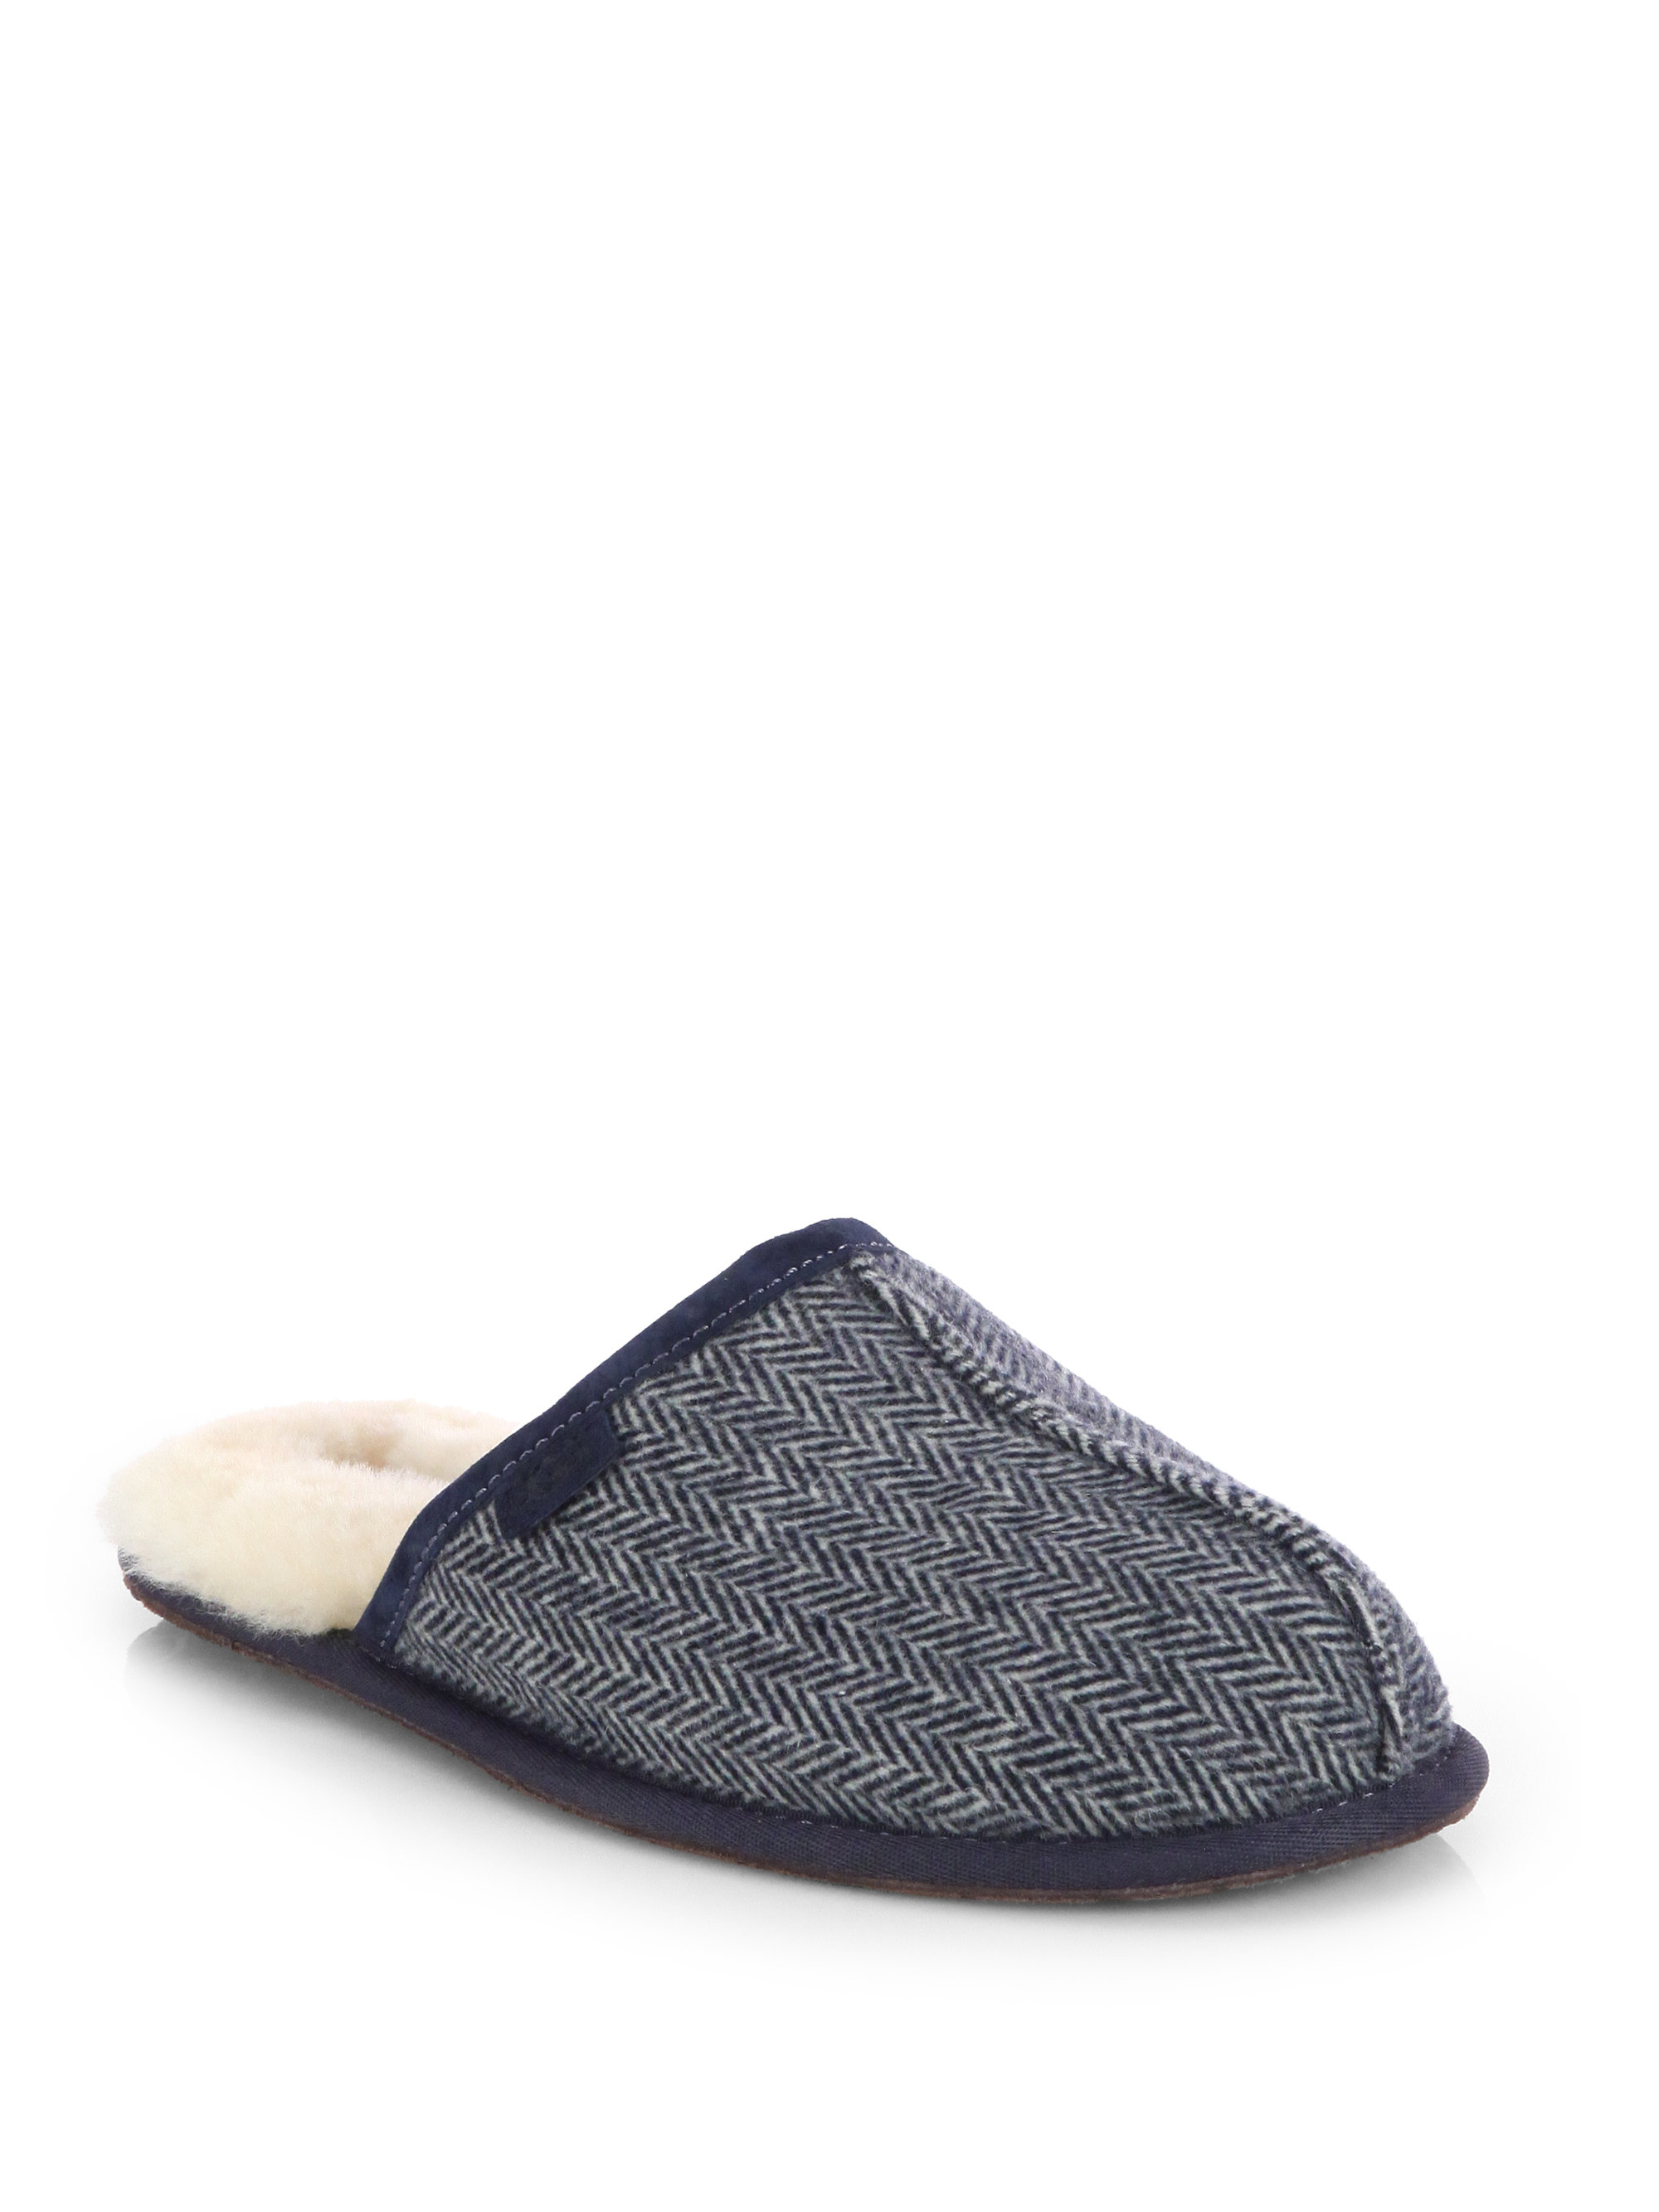 ca40d8d700b Mens Ugg Scuff Herringbone Slippers - cheap watches mgc-gas.com